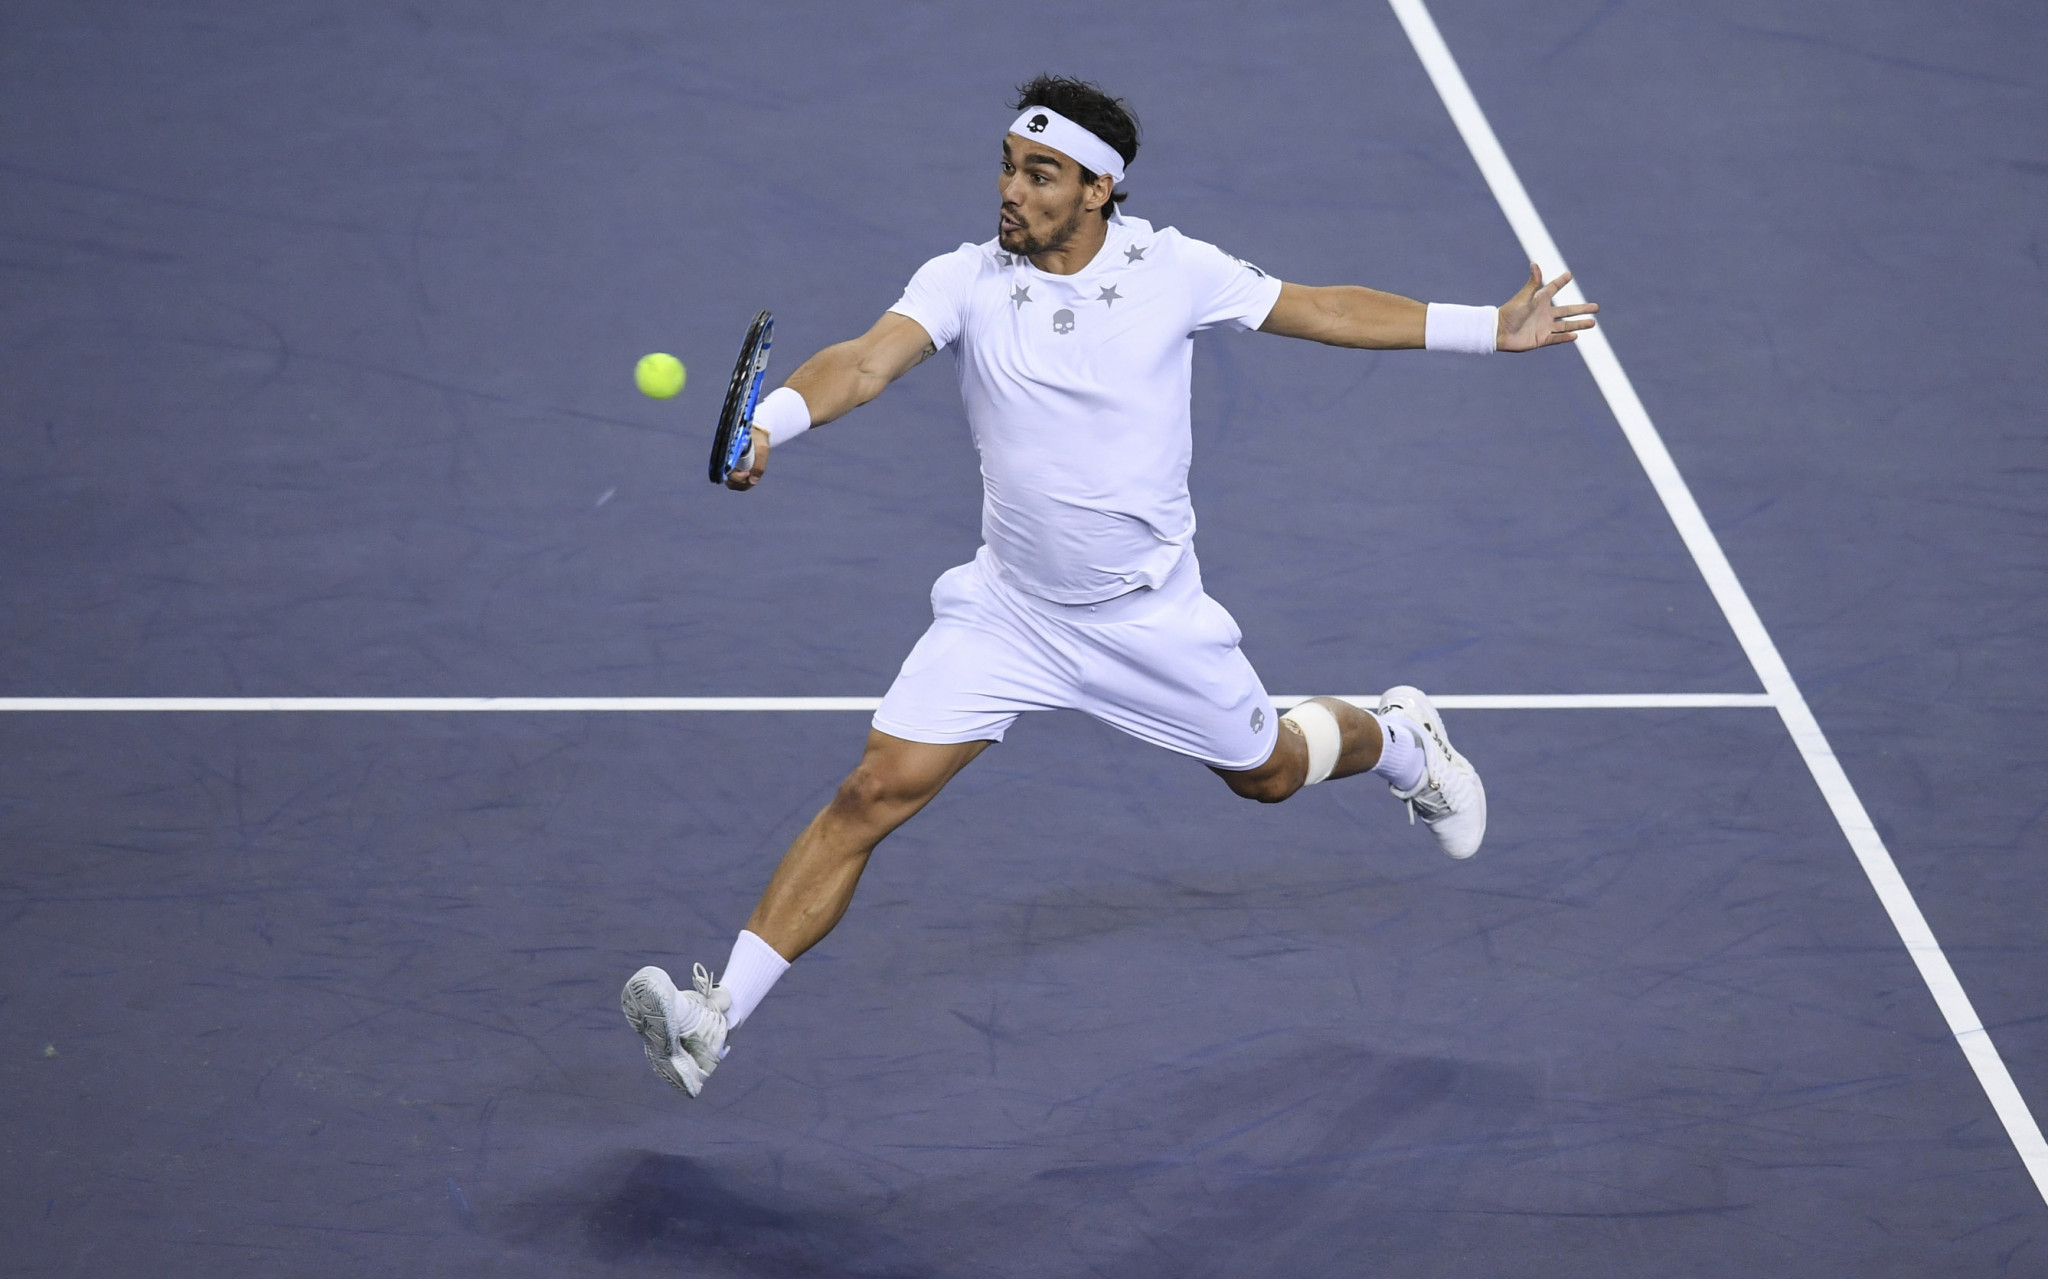 Penalties will be cut if Fabio  Fognini stays clean at the next two Grand Slam seasons ©Getty Images